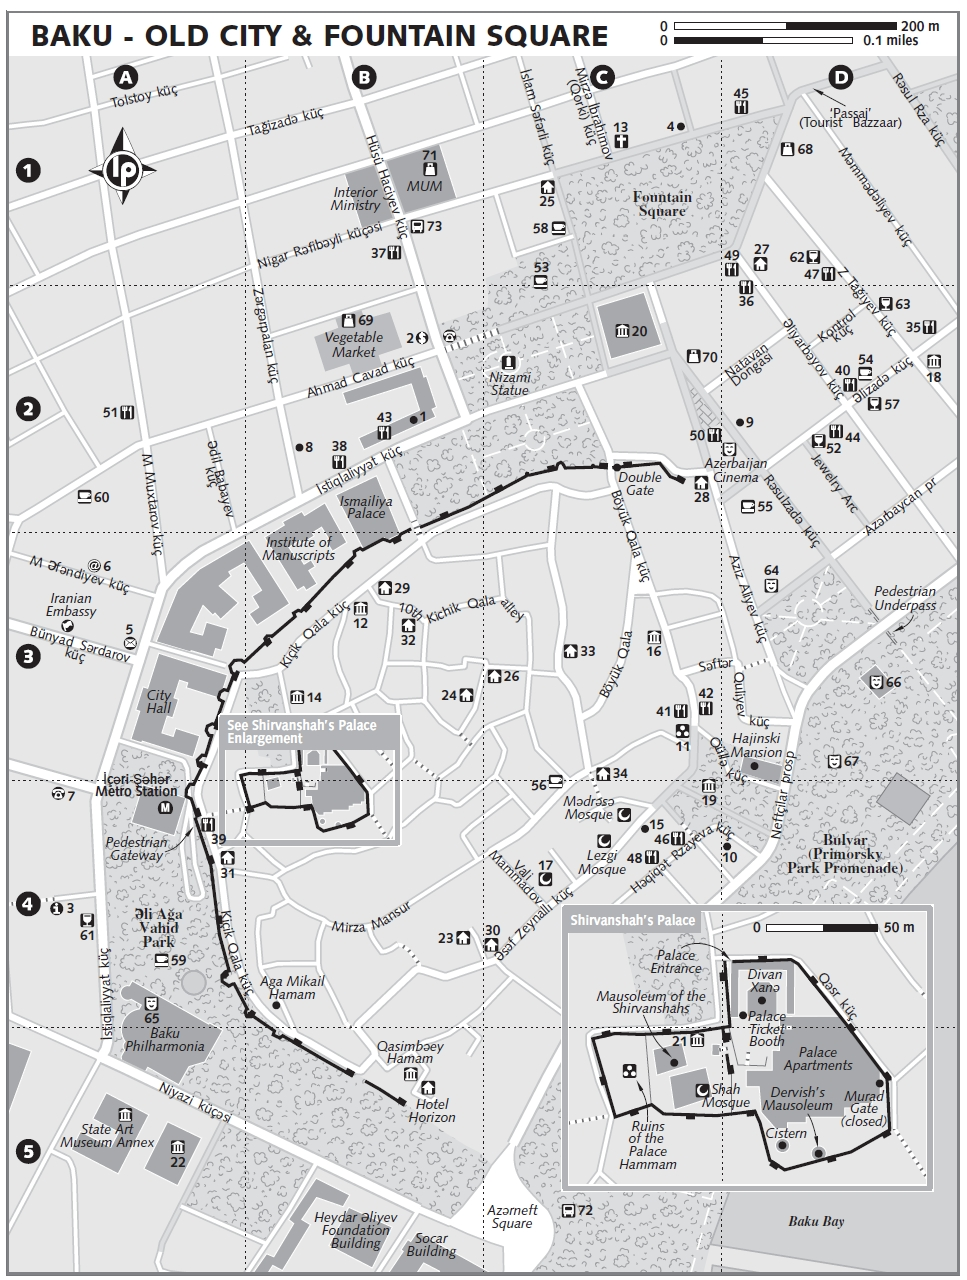 Baku's Old City map